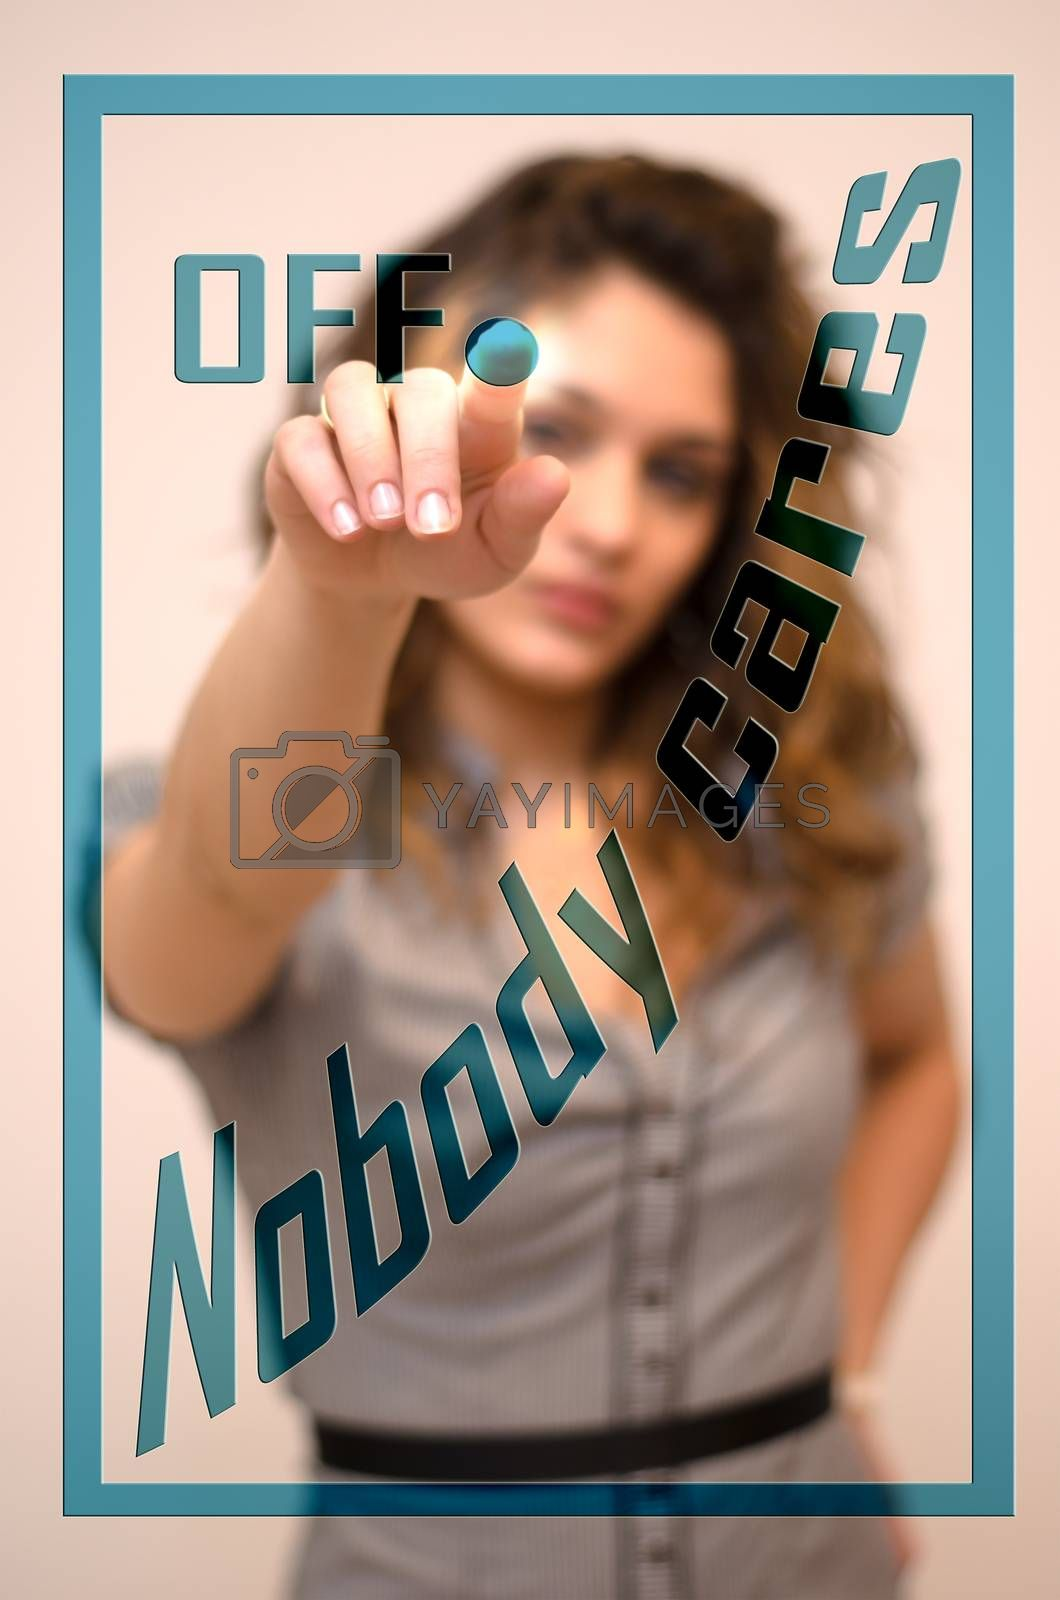 young woman turning offNobody cares on hologram screen